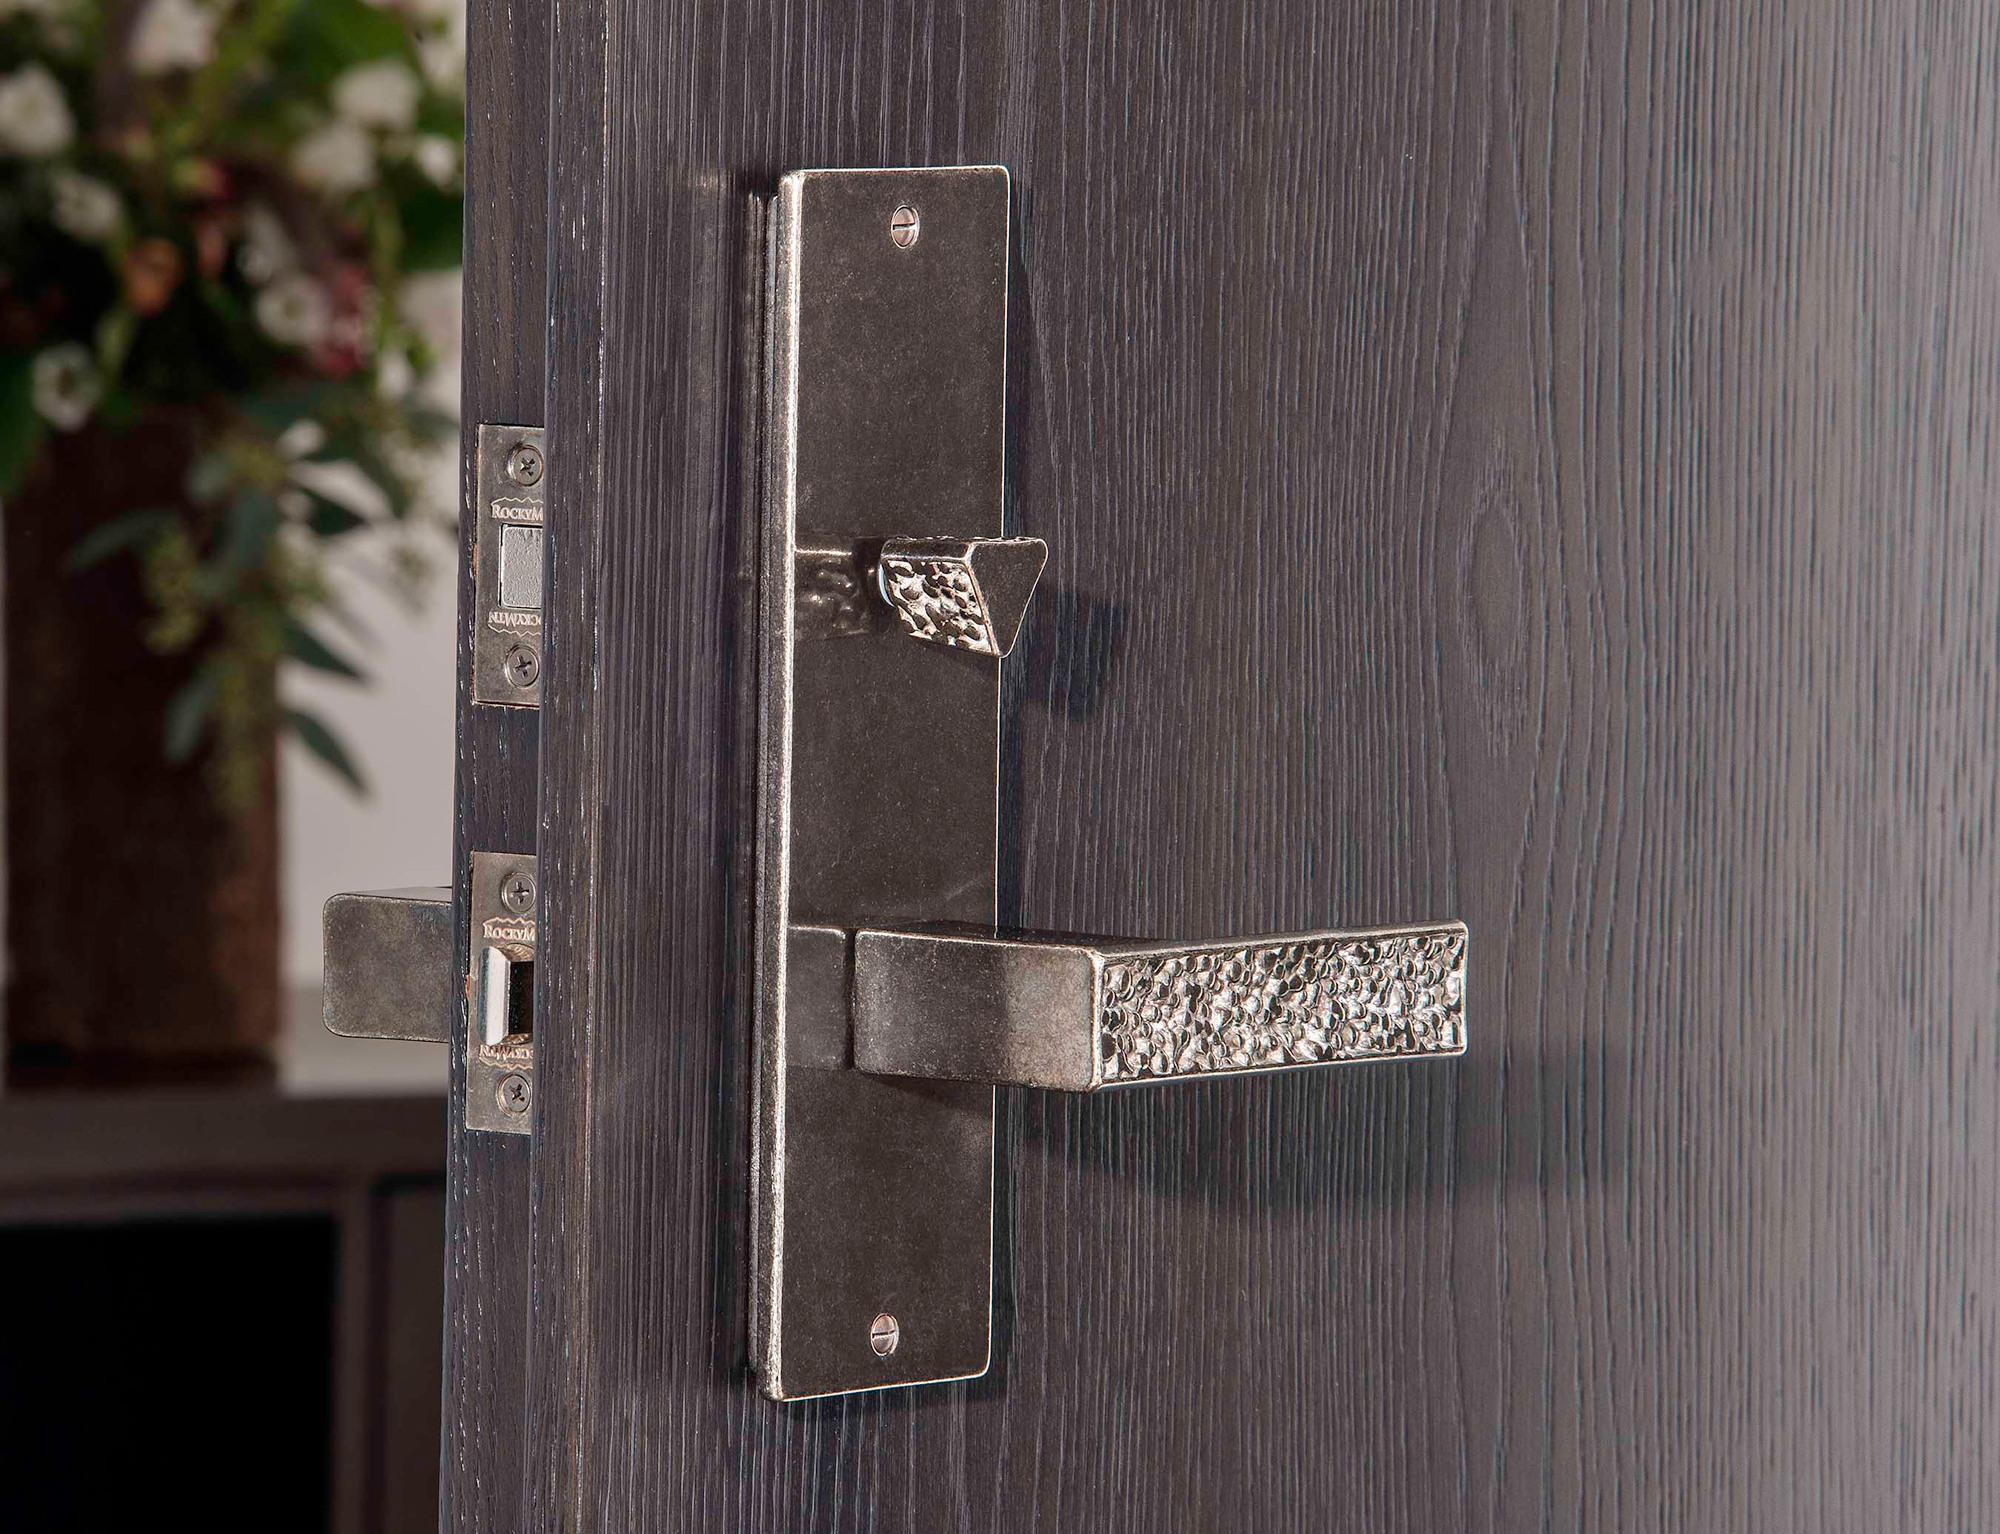 Trousdale Collection Privacy Hardware Shown In White Bronze, Medium Patina.